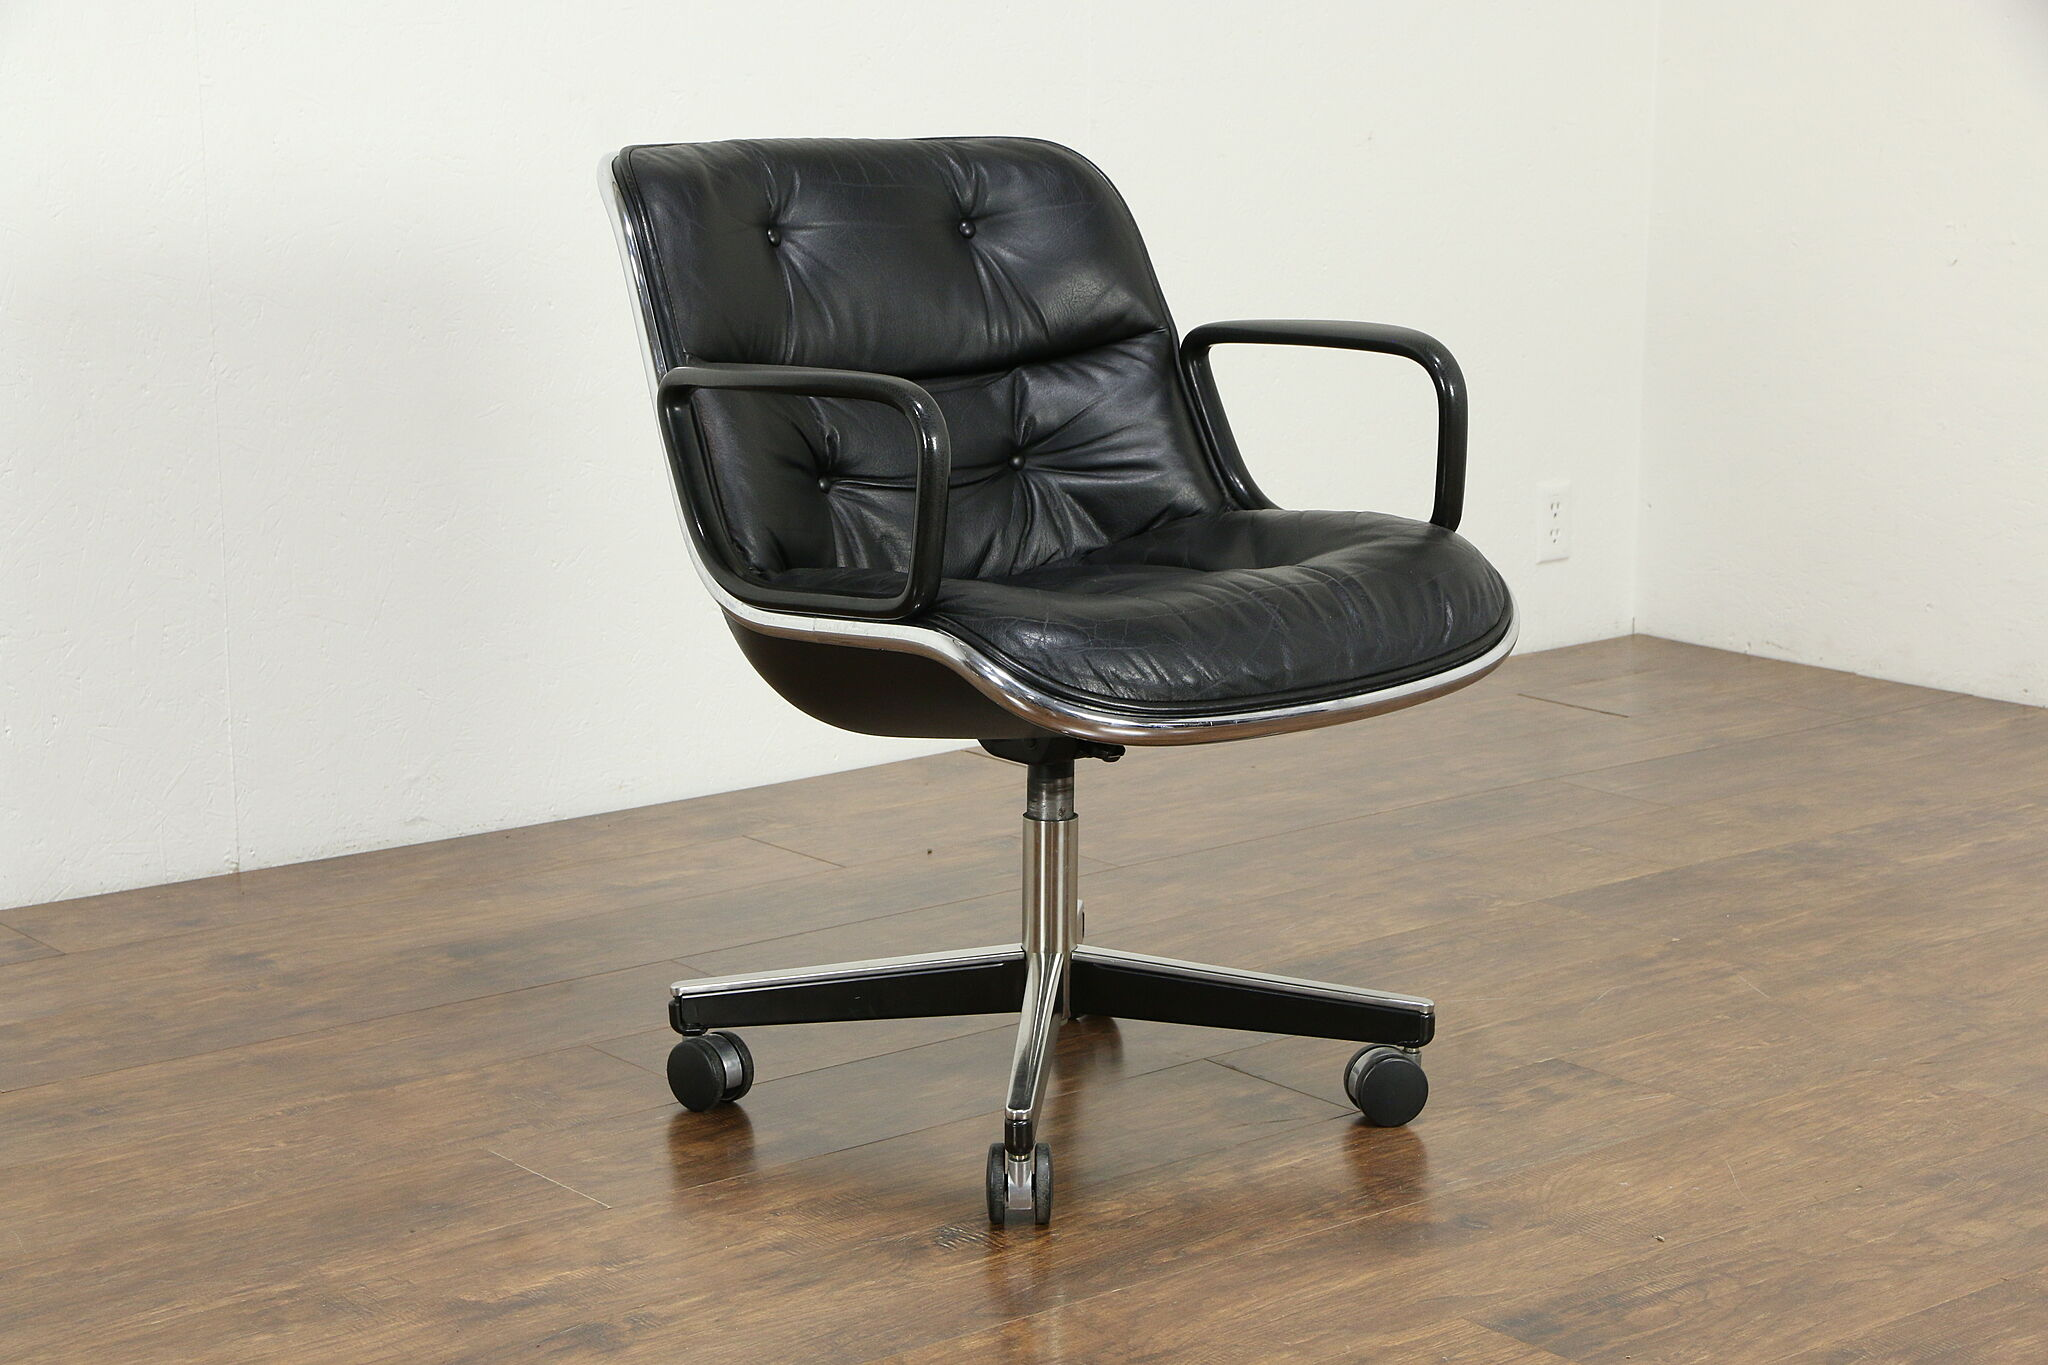 Sold Knoll Midcentury Vintage Swivel Adjustable Leather Chrome Desk Chair 34287 Harp Gallery Antiques Furniture